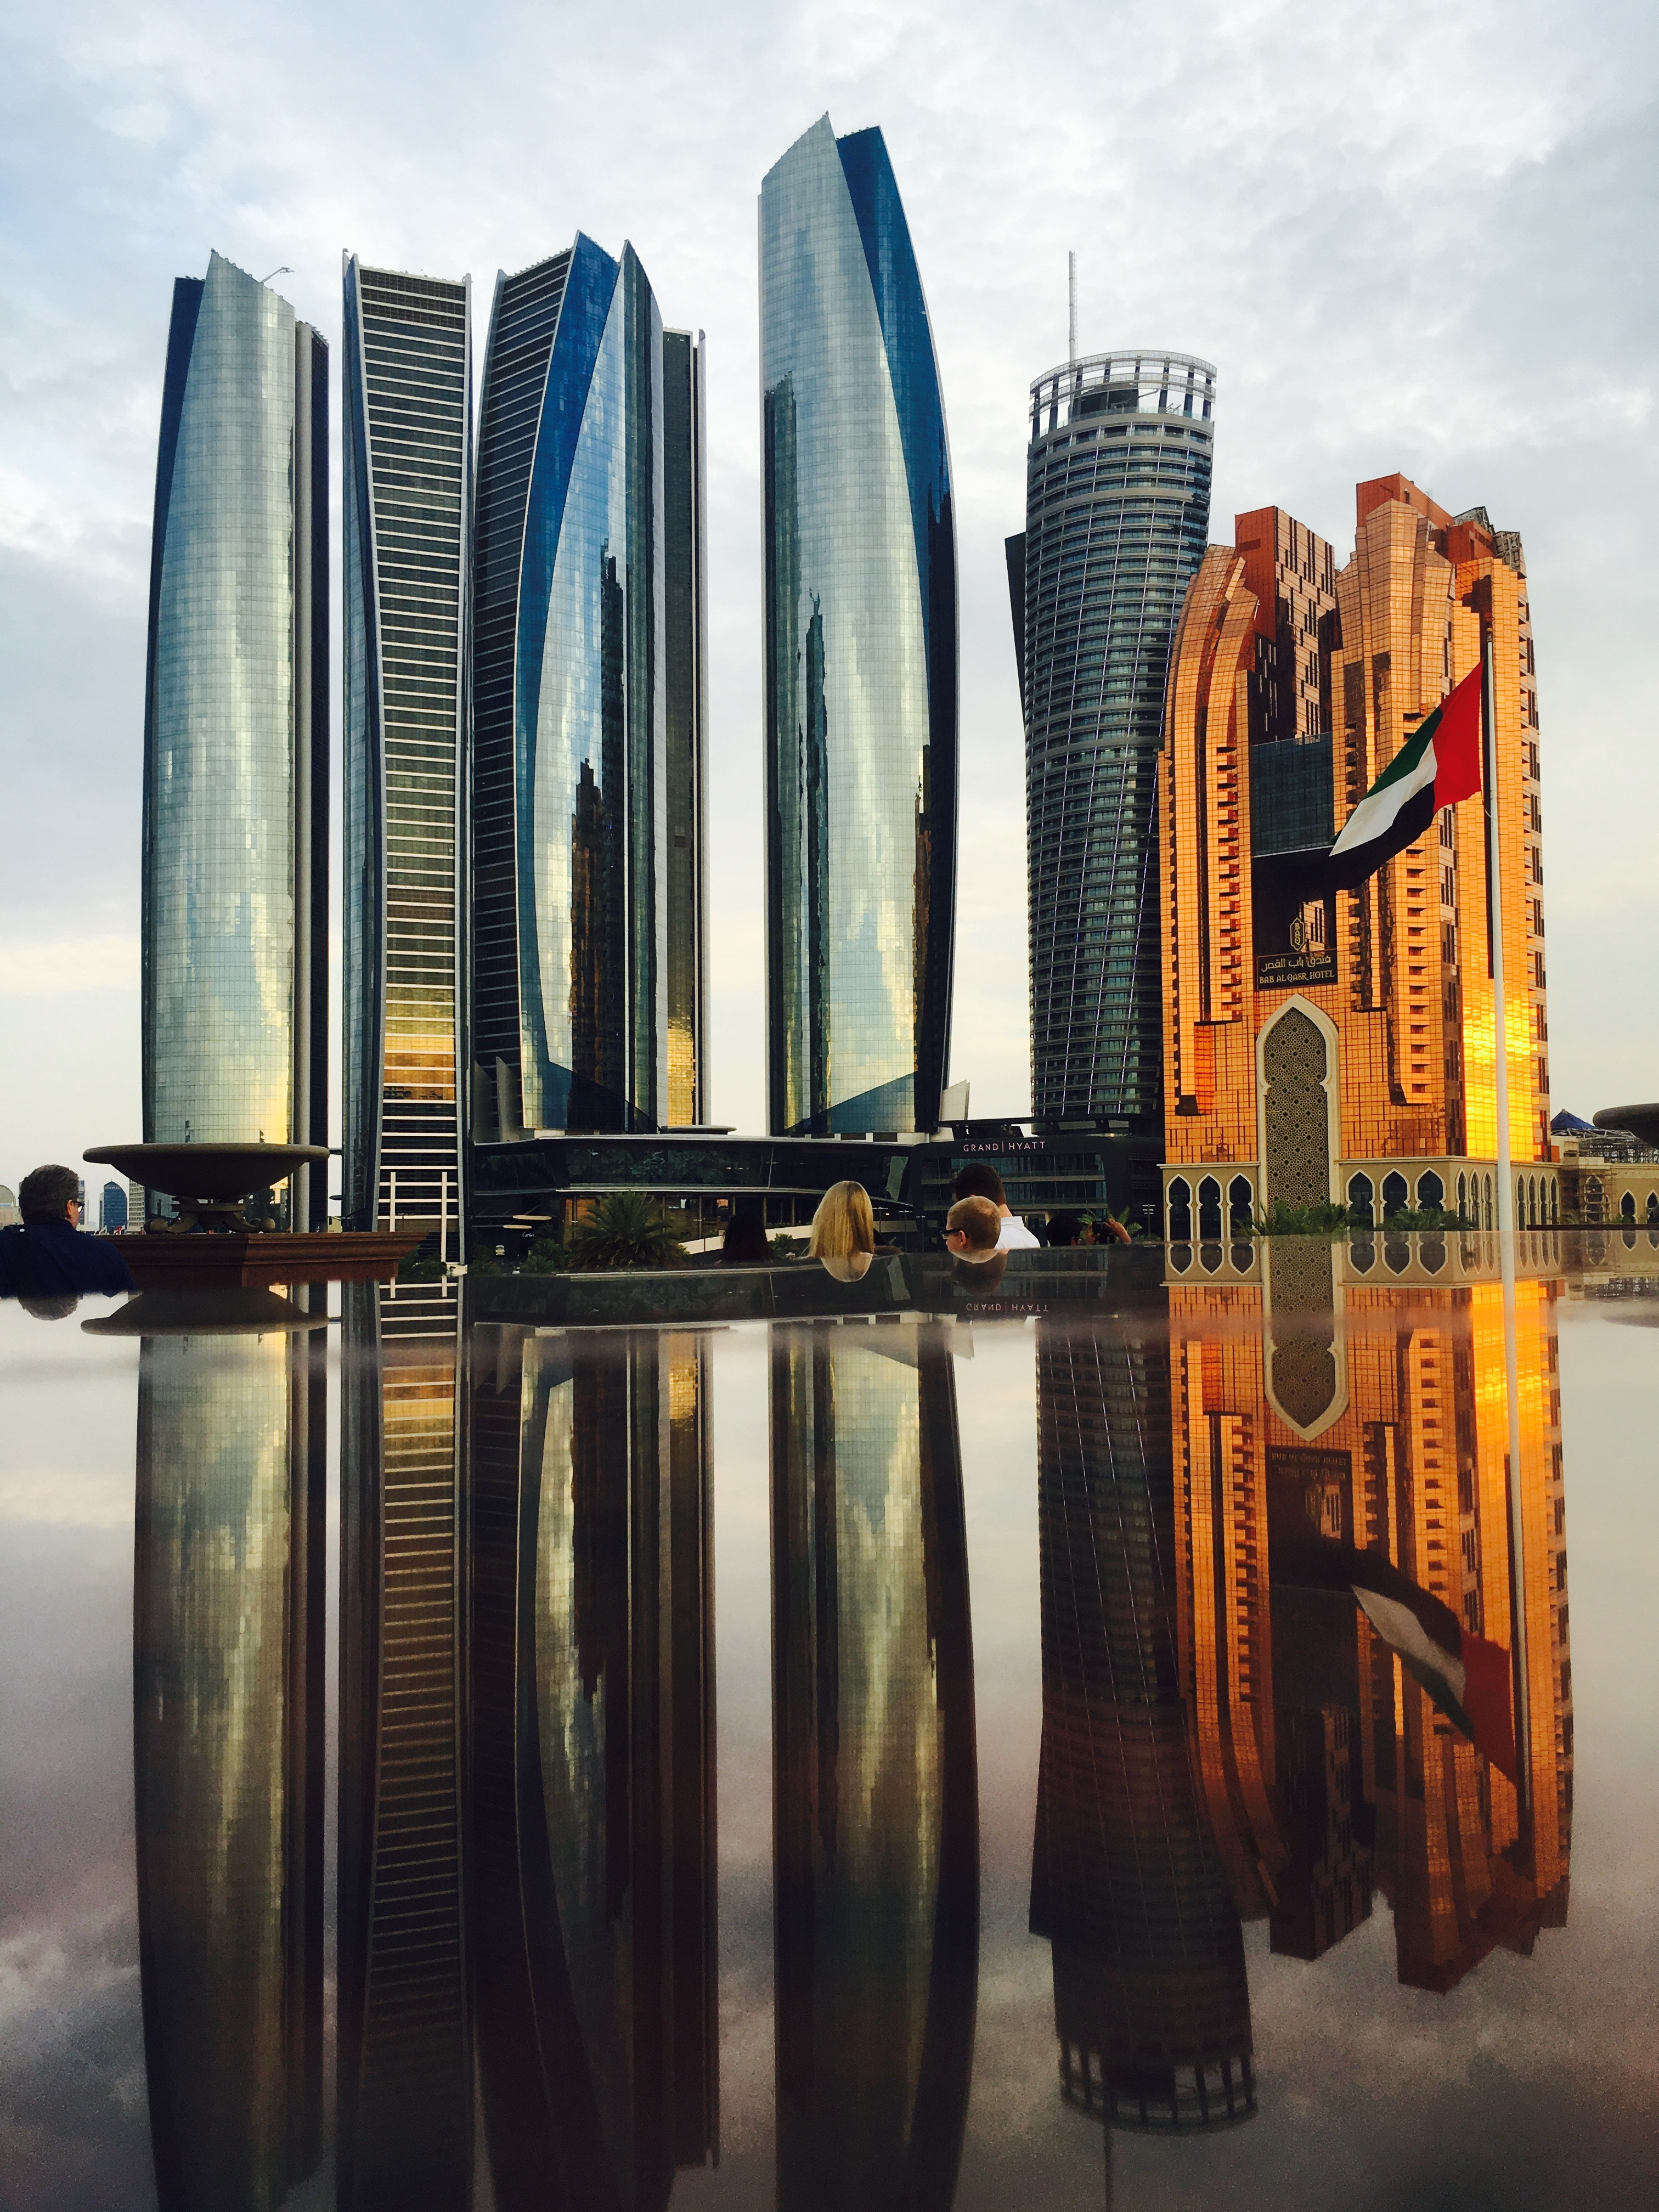 Reflection of skyscrapers in city photo